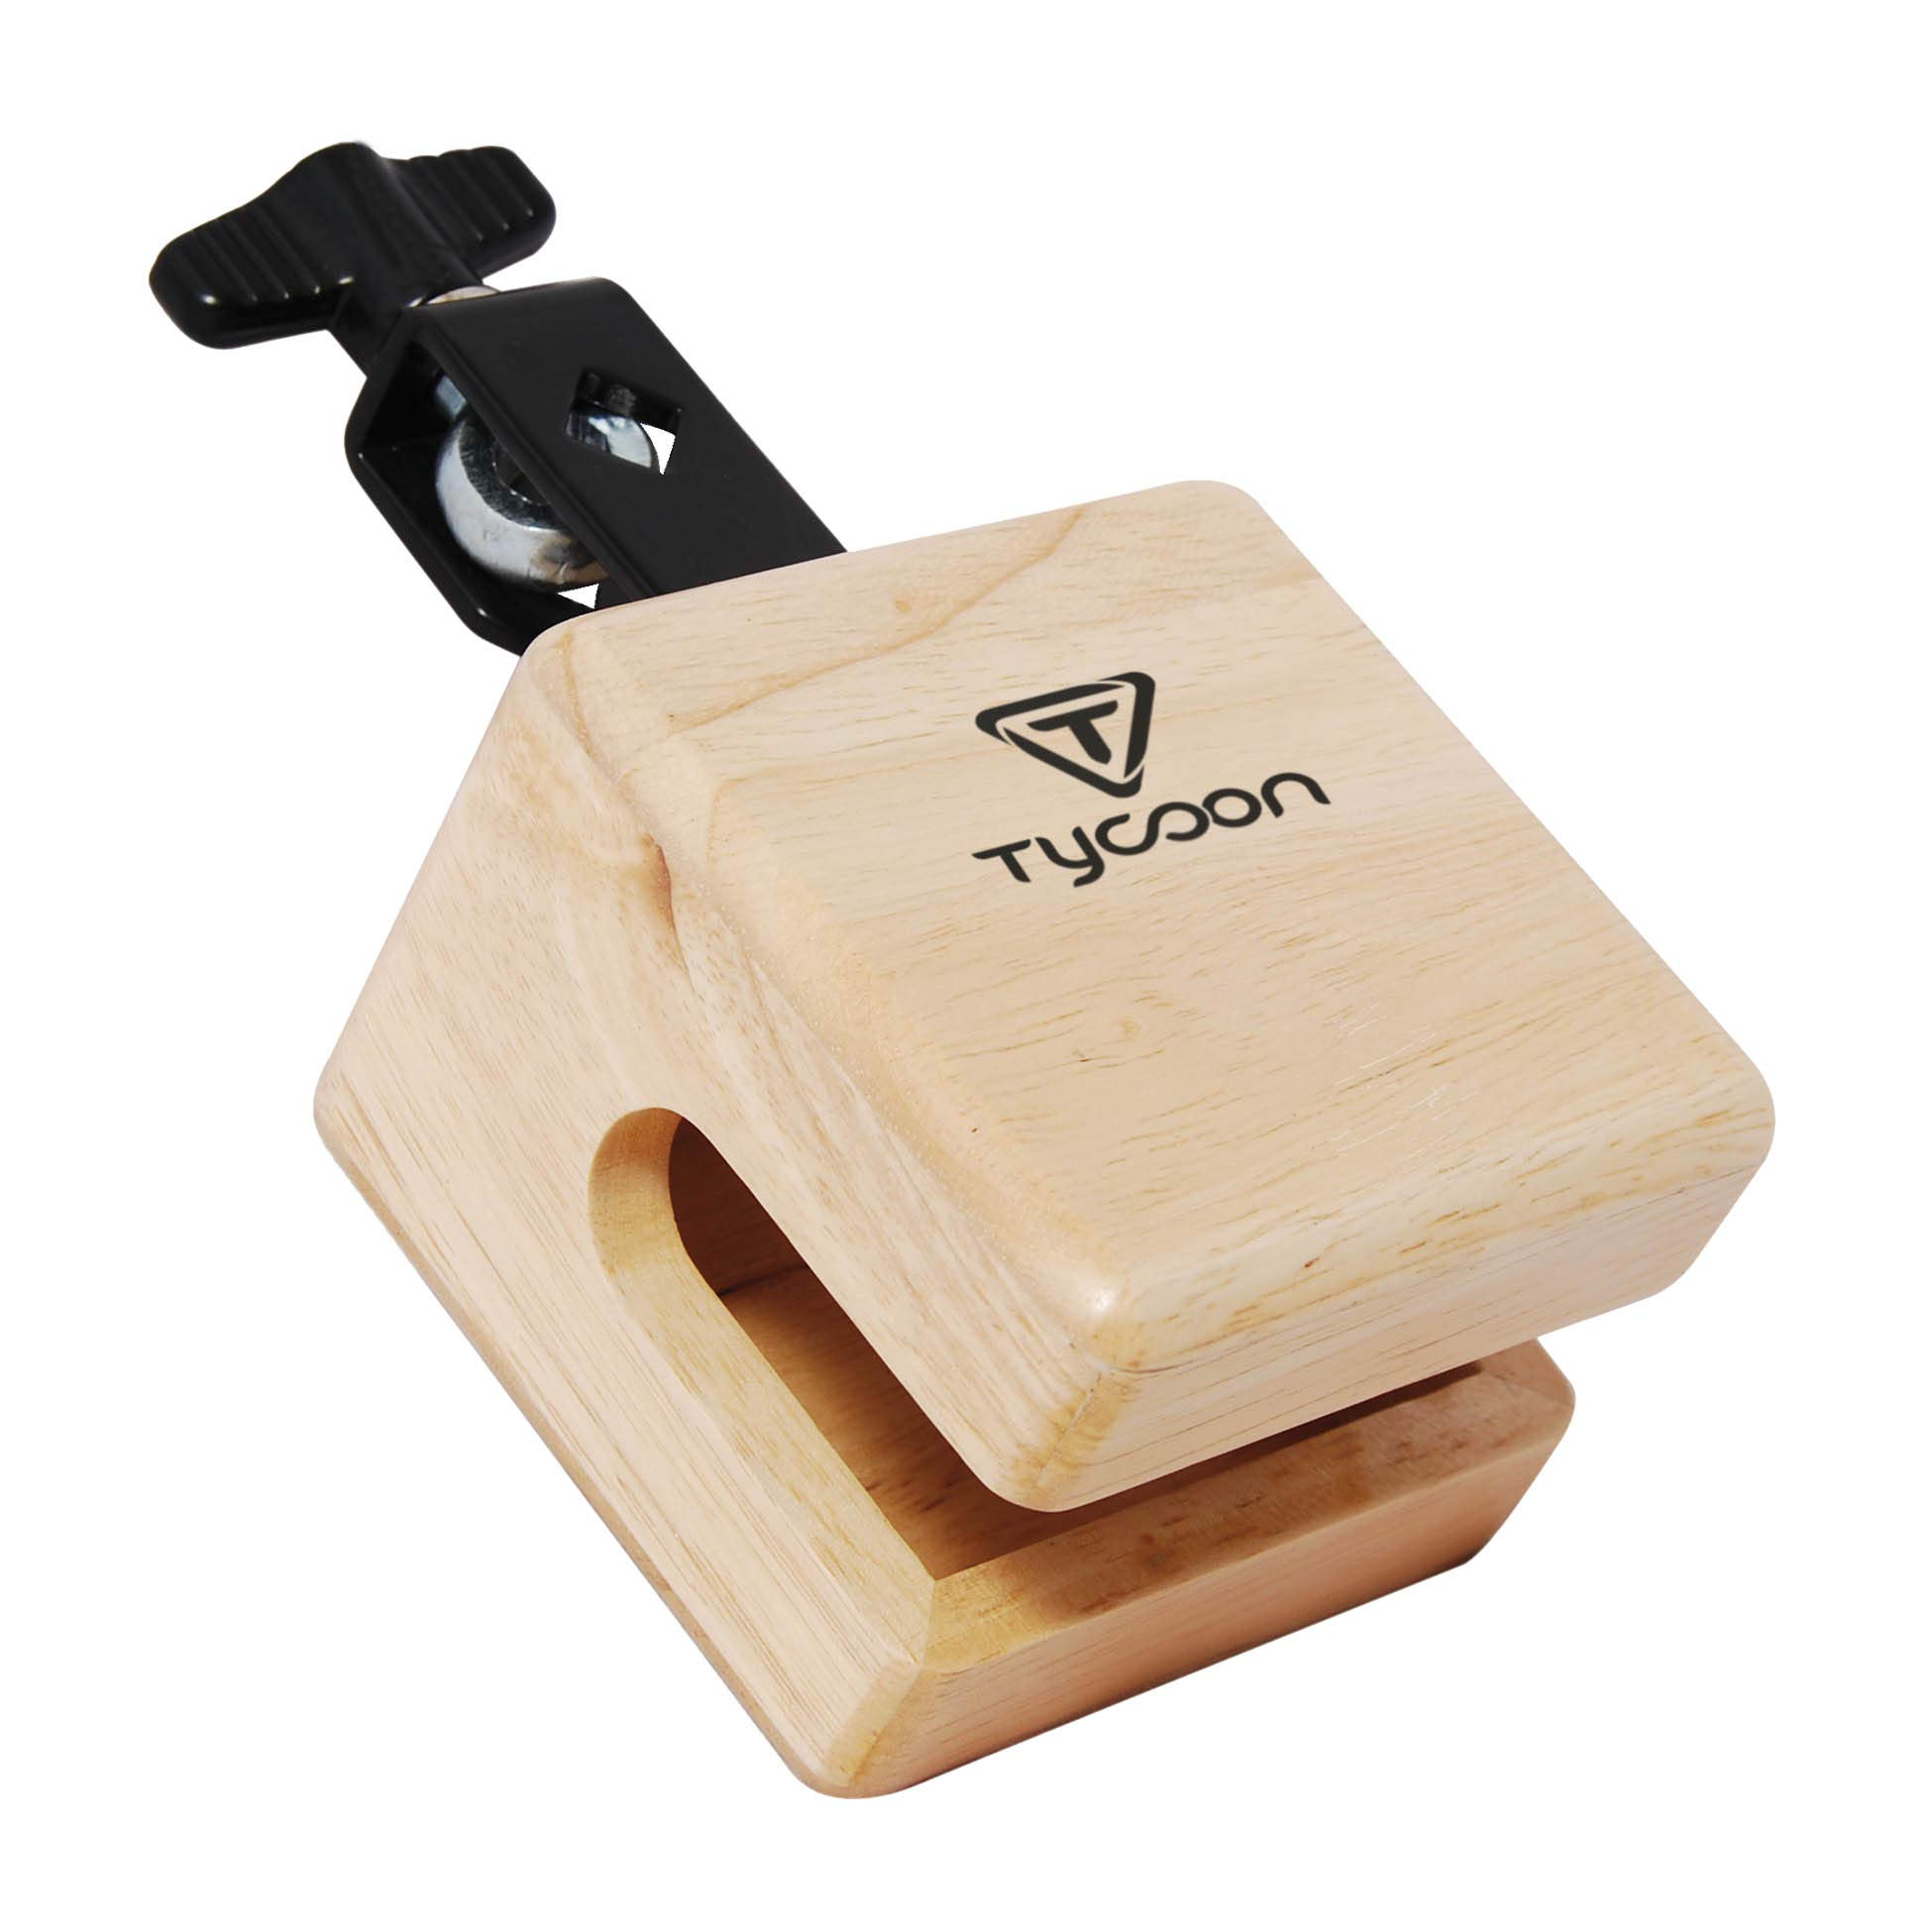 Tycoon Percussion Percussion Blocks (TWB-45) by Tycoon Percussion